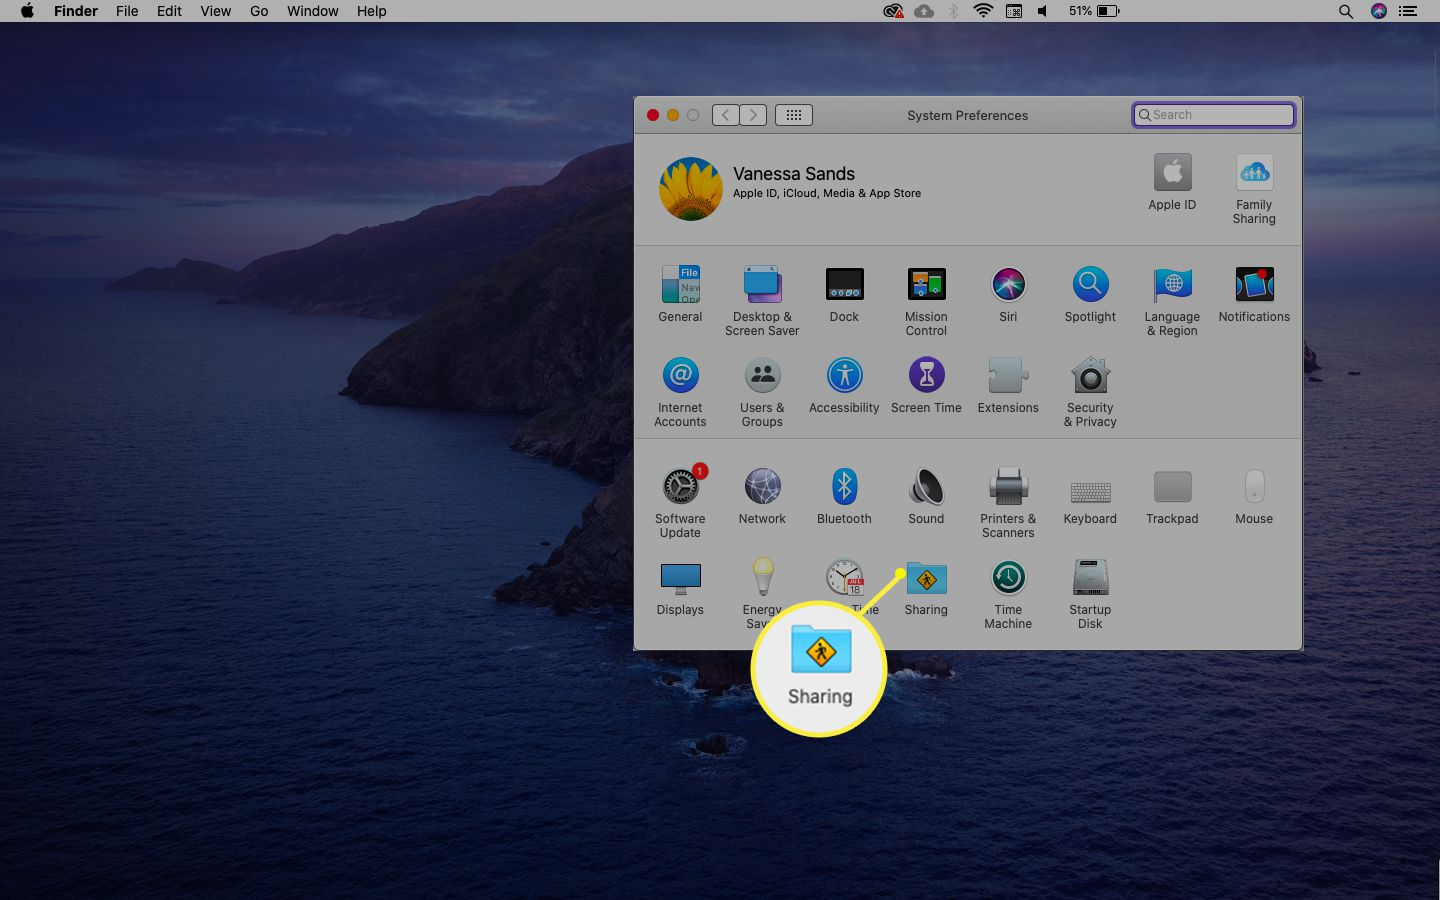 macOS Sharing option from the System Preferences menu